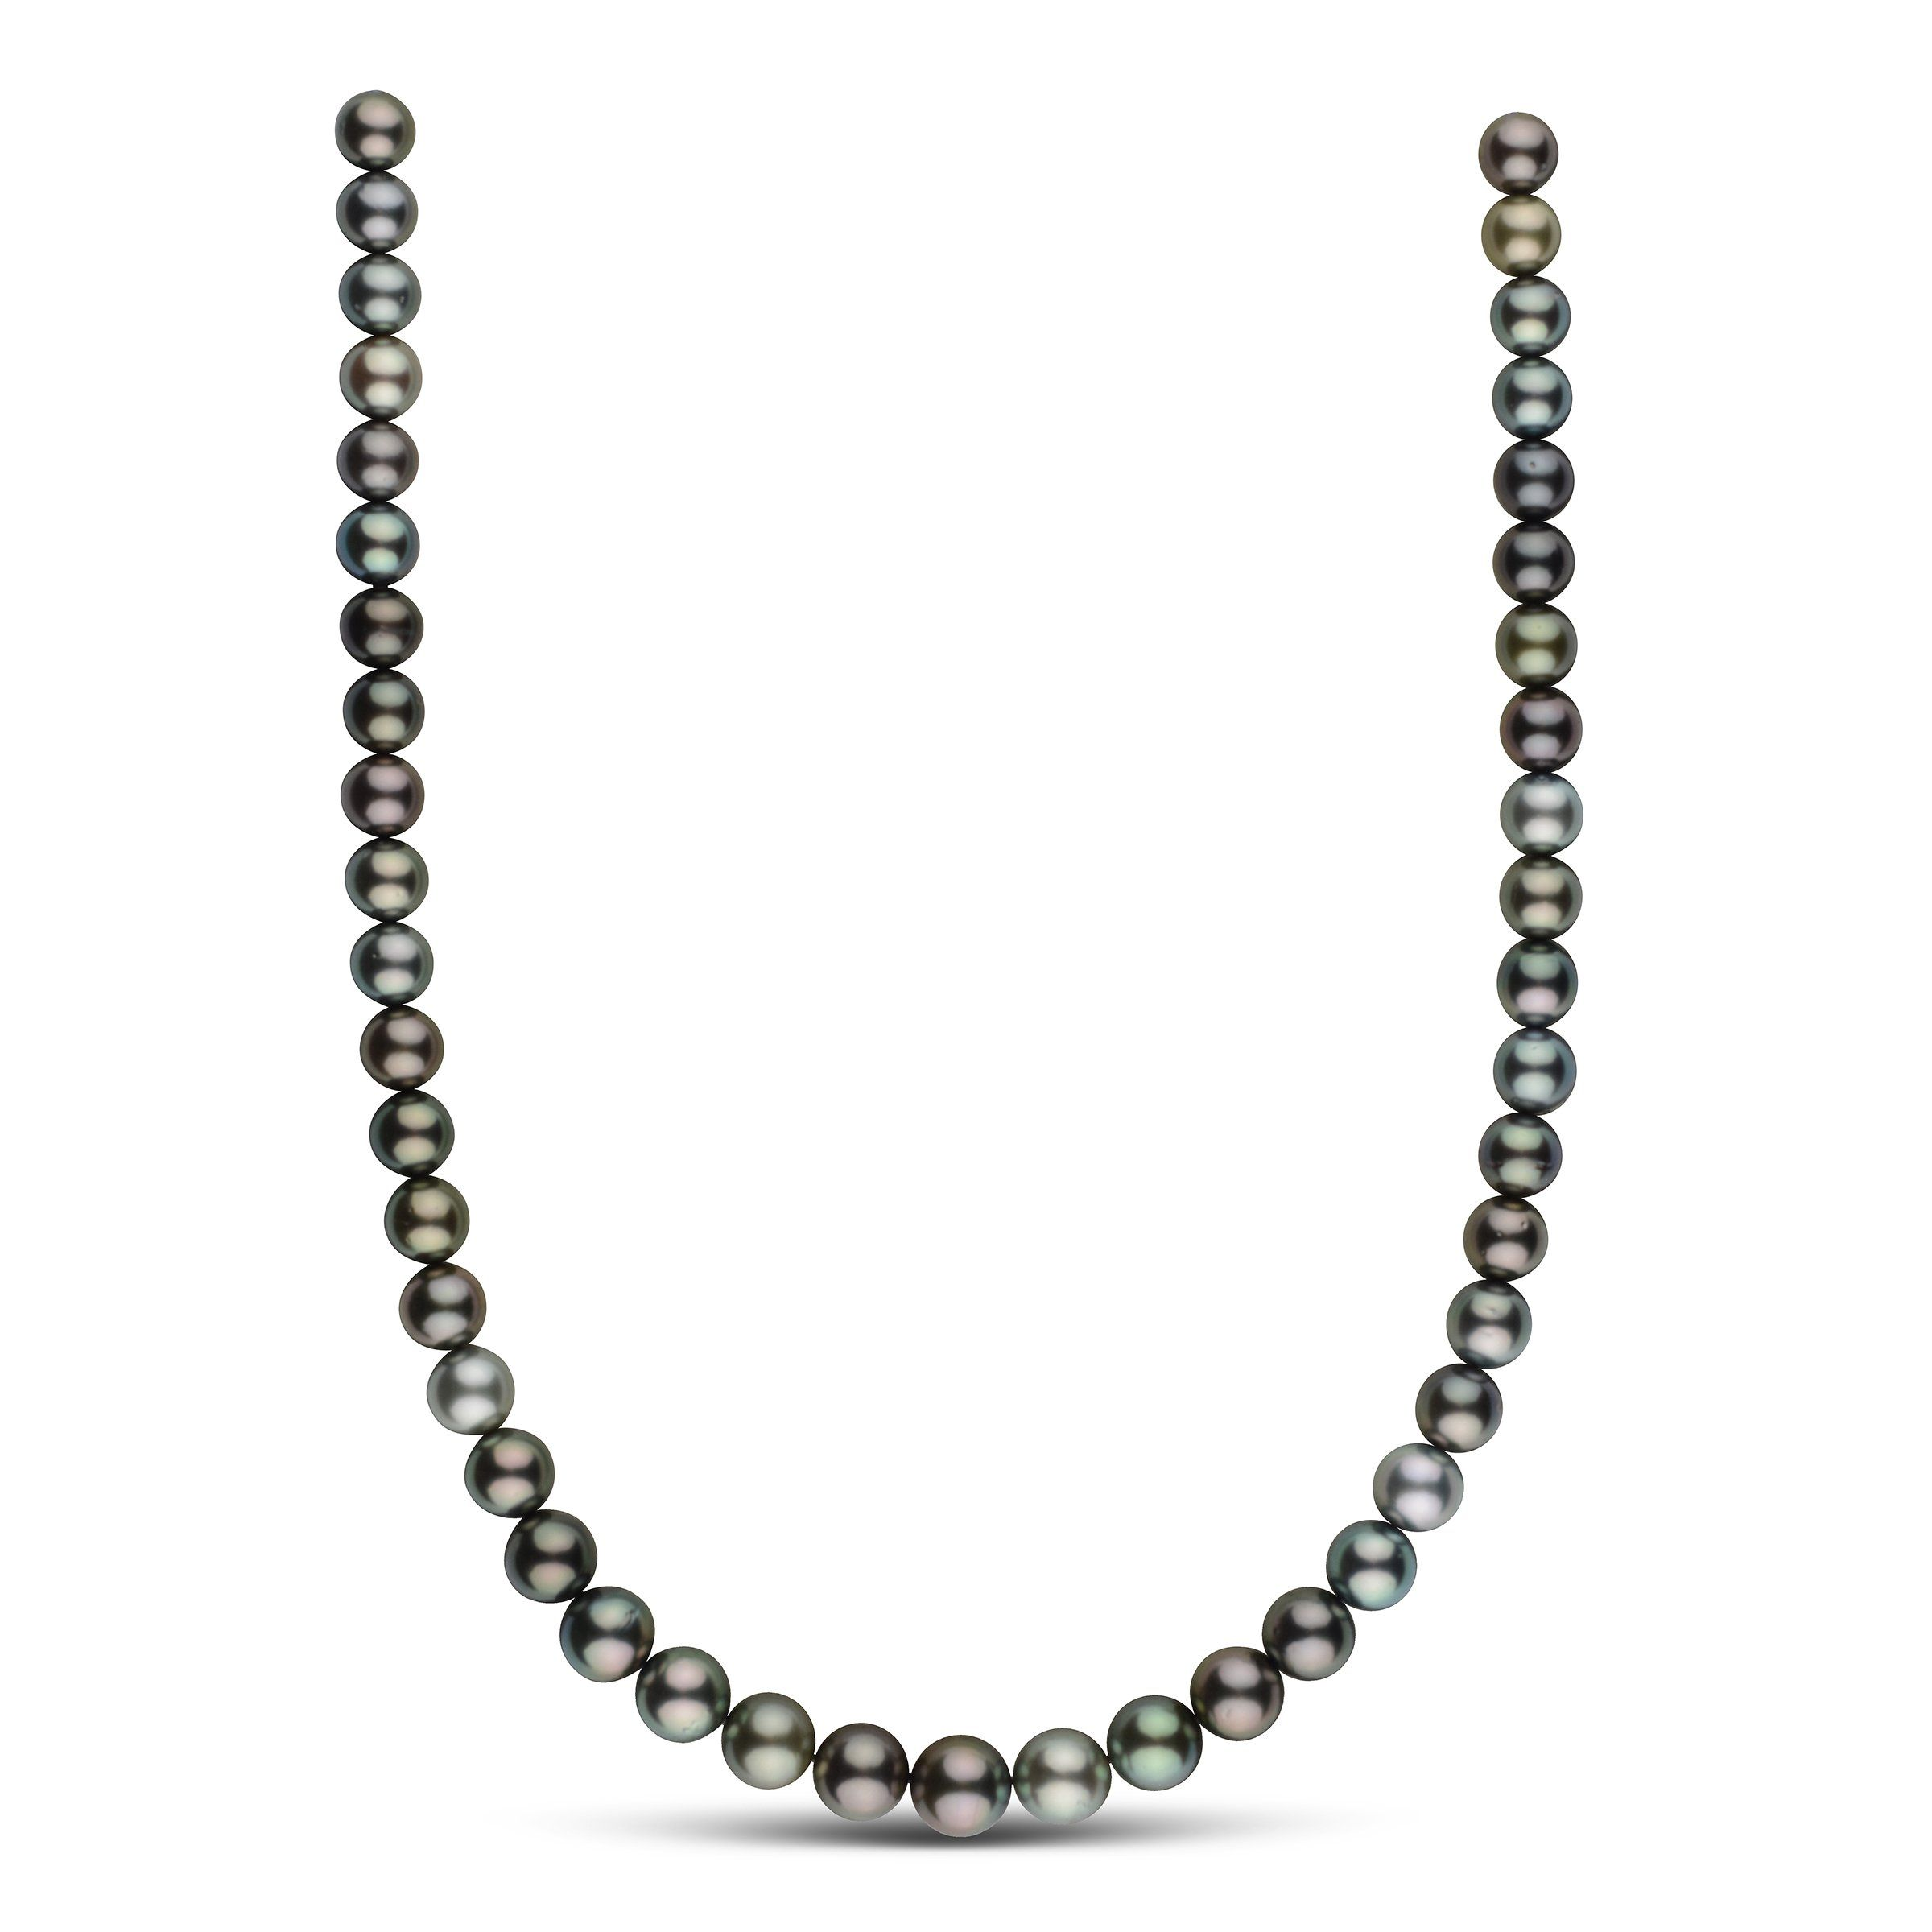 8.5-10.7 mm AA+ Round Tahitian Pearl Necklace